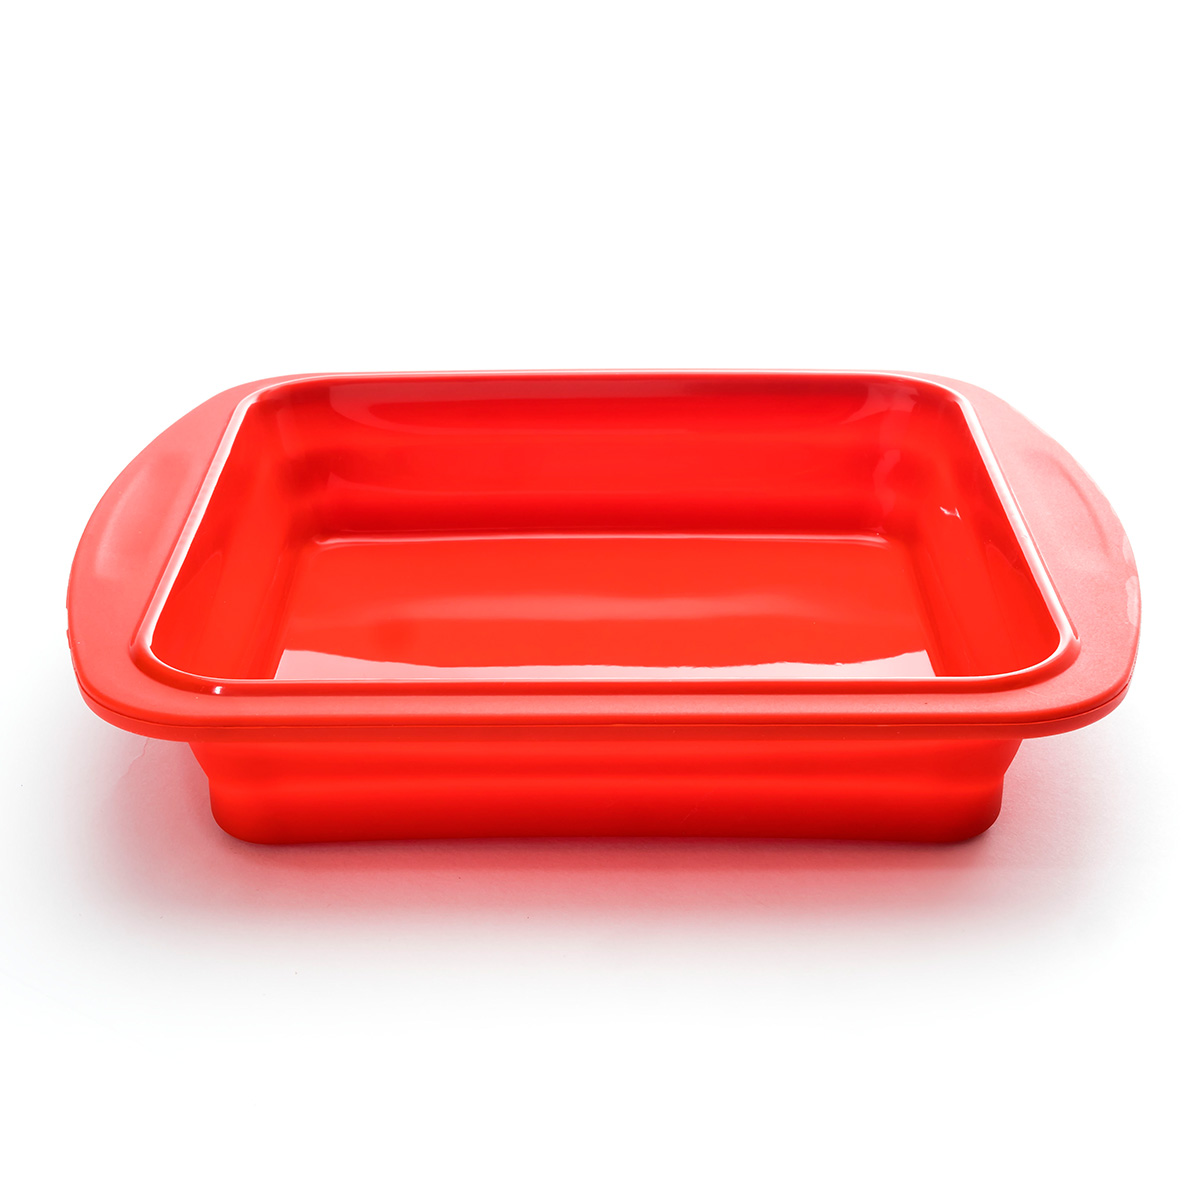 Cook-039-s-Companion-4-Piece-Collapsible-Silicone-Bakeware-Set thumbnail 13